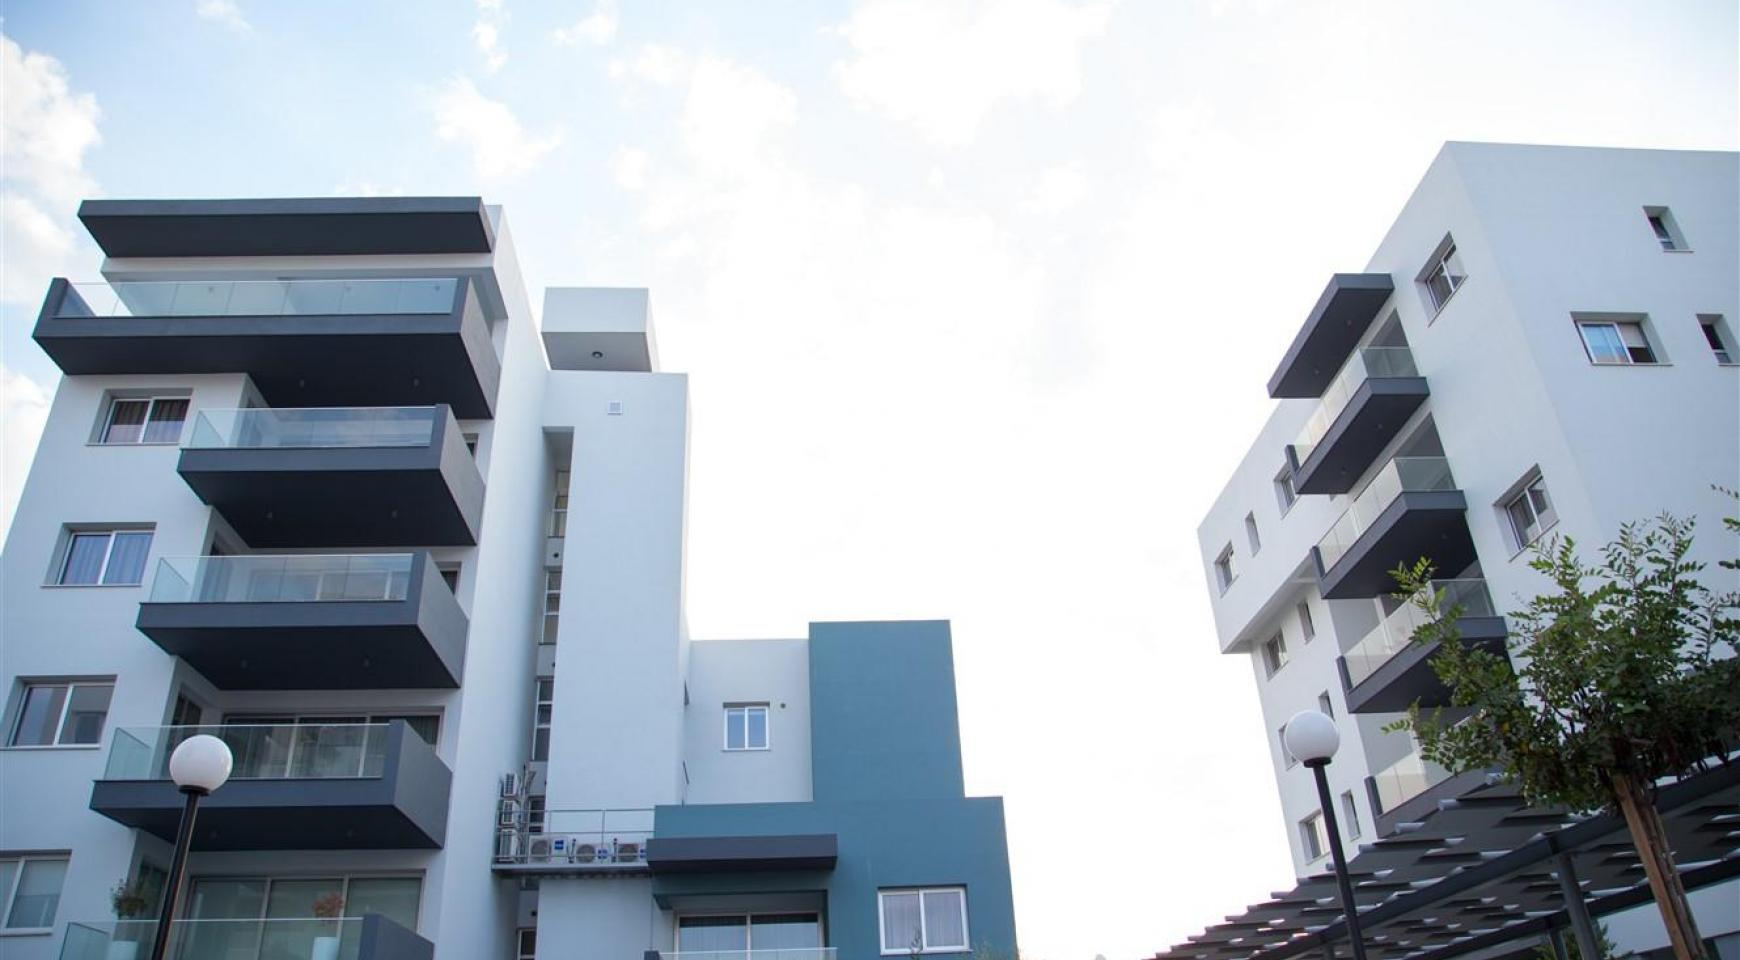 Elite 3 Bedroom Penthouse with private Swimming Pool on the Roof - 10